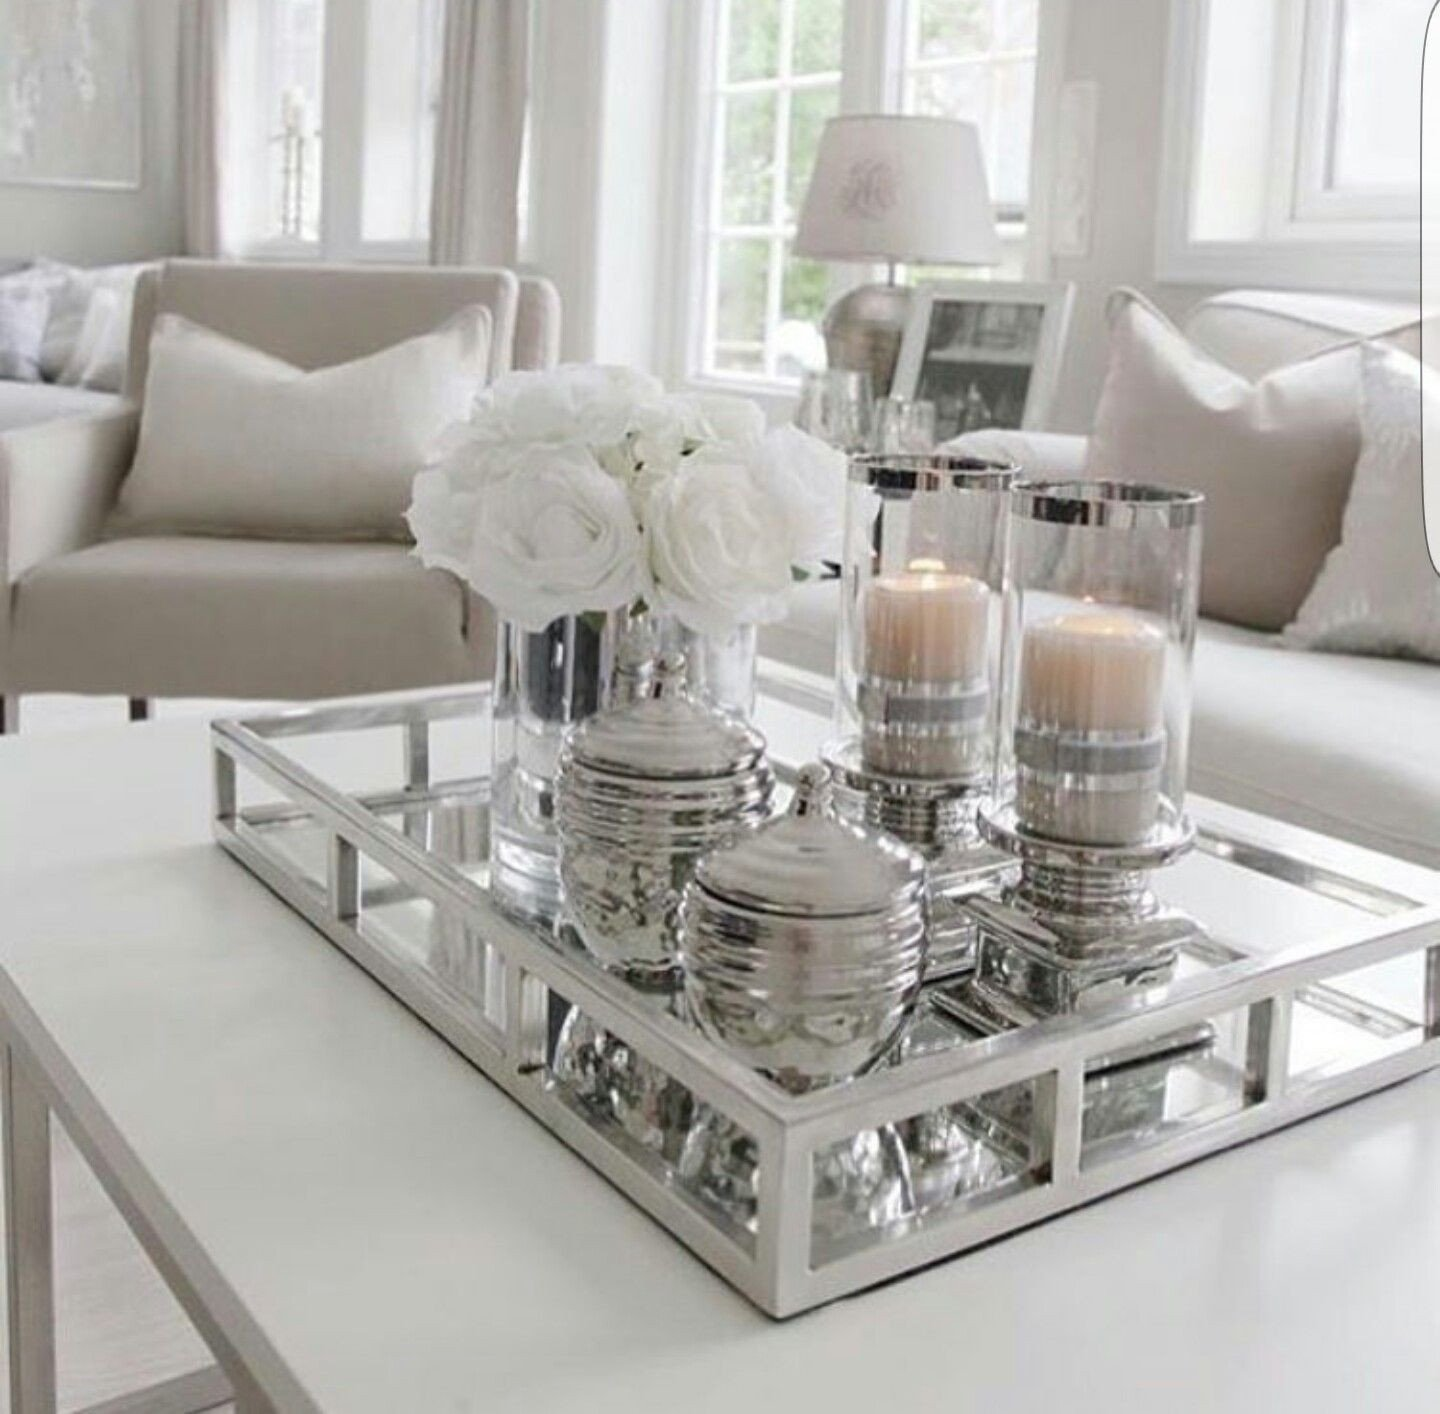 Living Room End Table Decor Unique Pinterest Maddylanae ☼☾ … Living Room